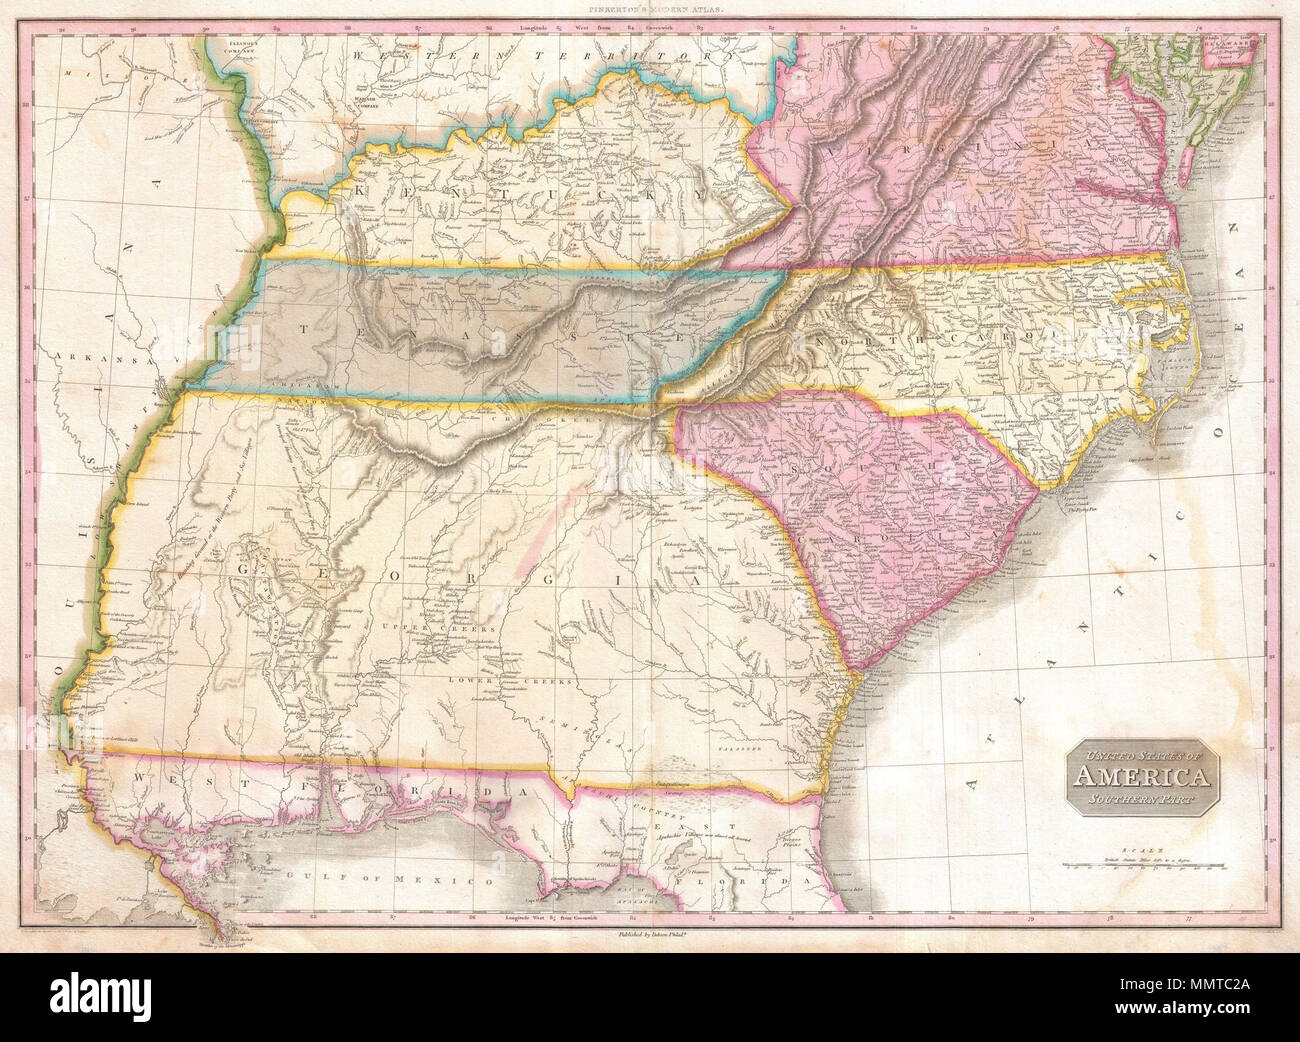 English: A rare and important 1818 map of the southeastern ... on united states at night from space, united states map of south america and canada, united states map with north south east west, united states map with mississippi river, county map with mississippi,